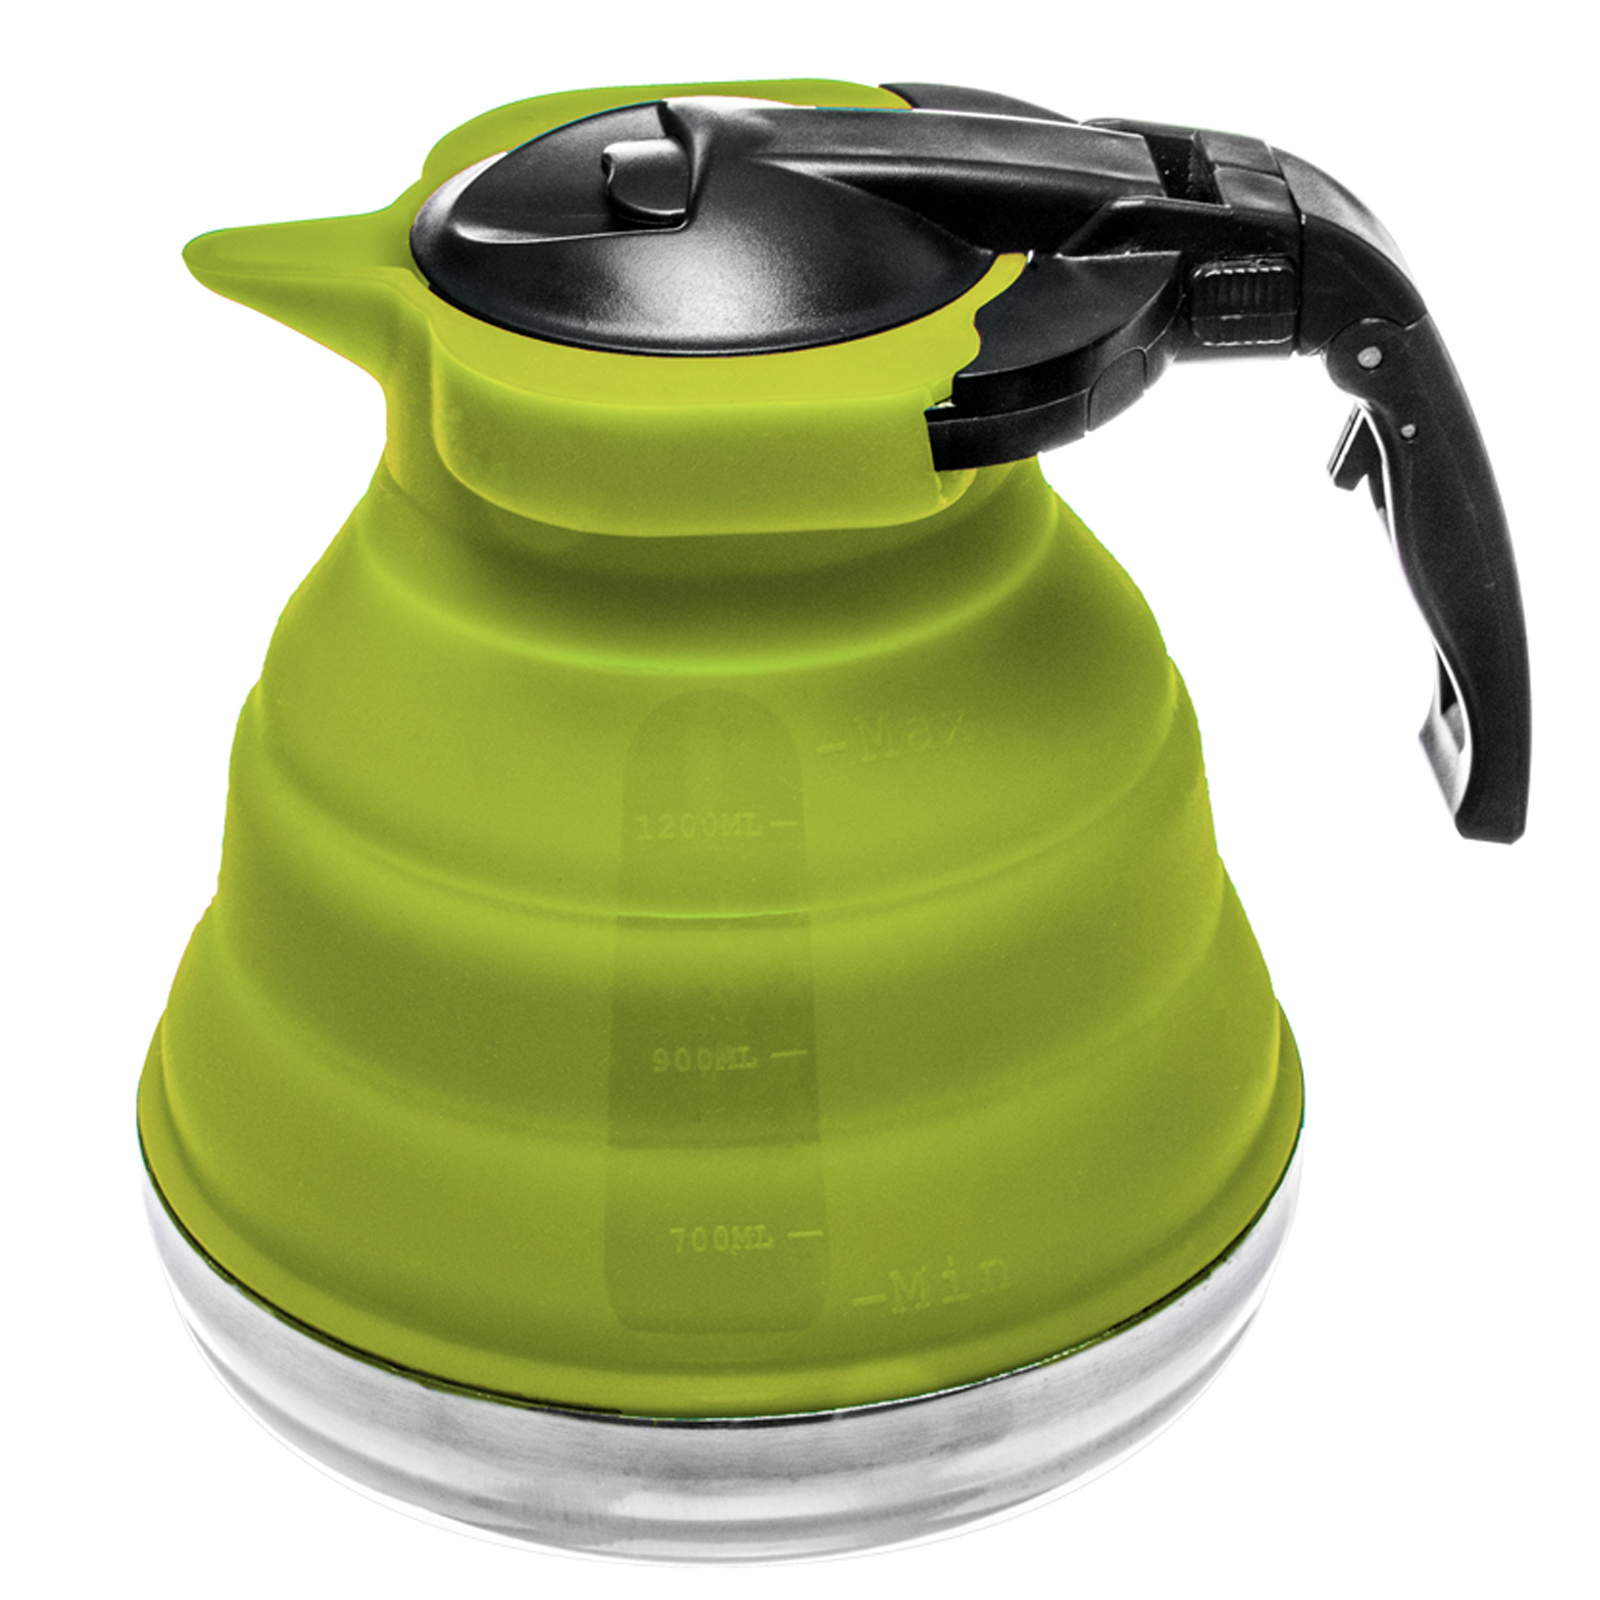 Collapsible Silicone Stainless Steel Base Kettle - Green